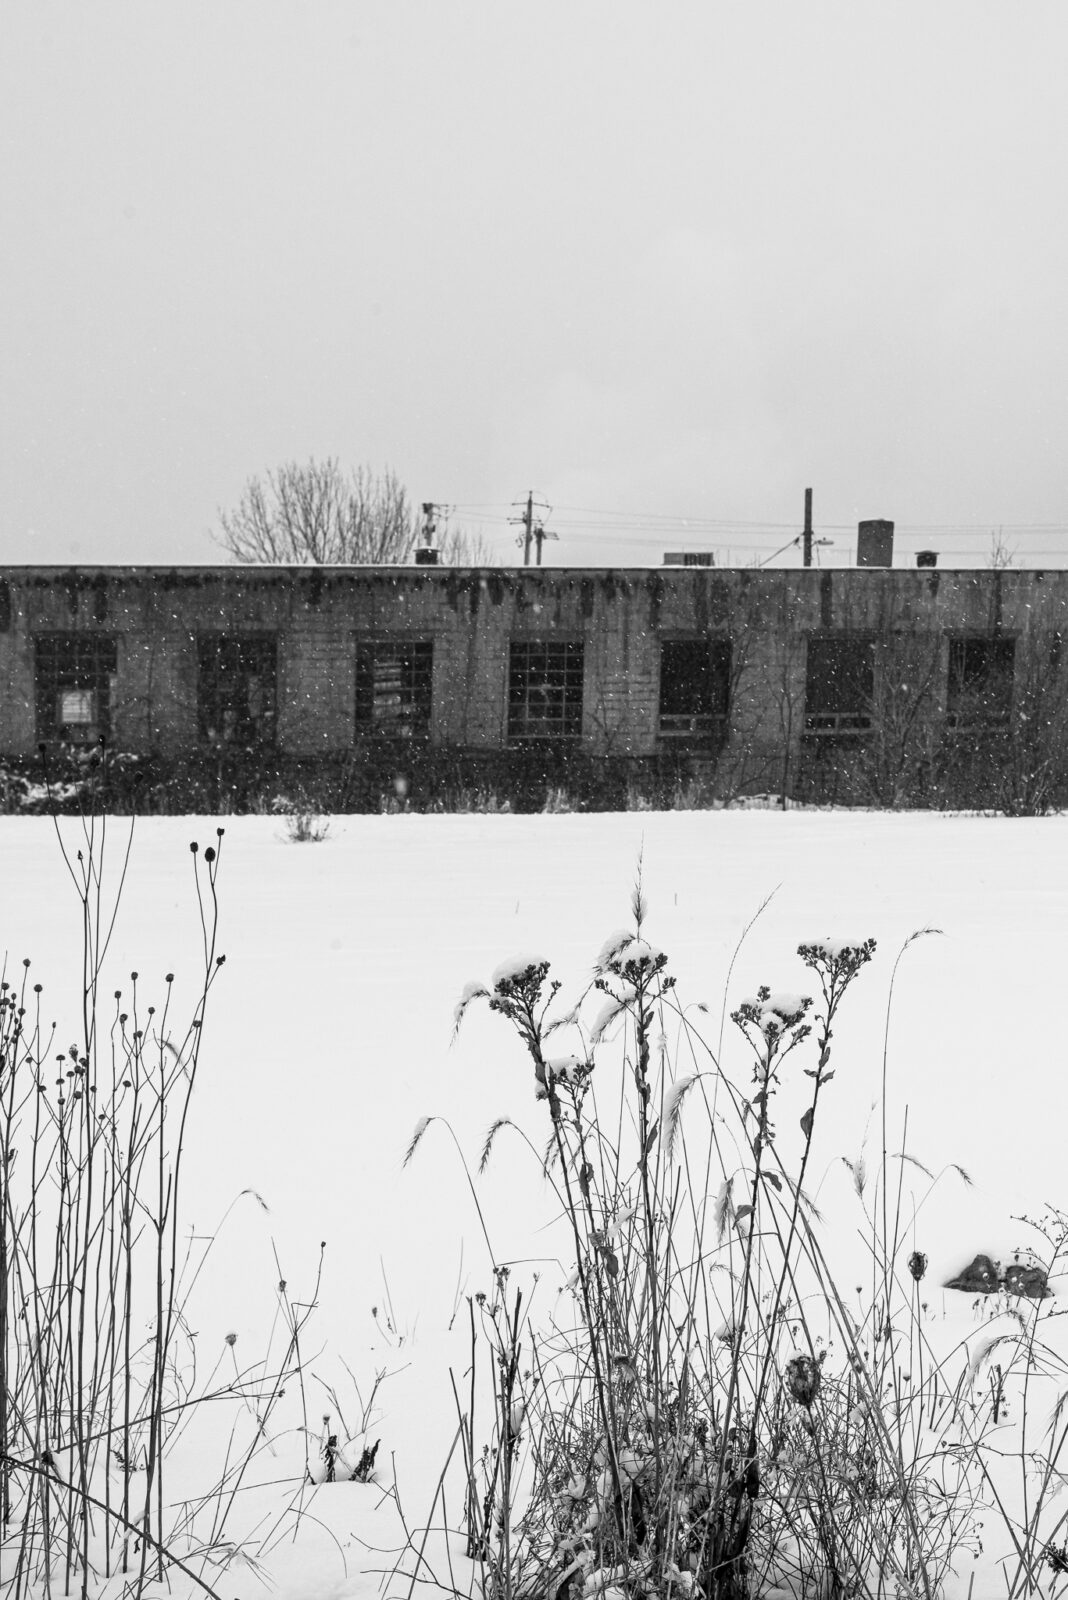 black and white photograph of snowy landscape with a one story factory building in the background and grey sky